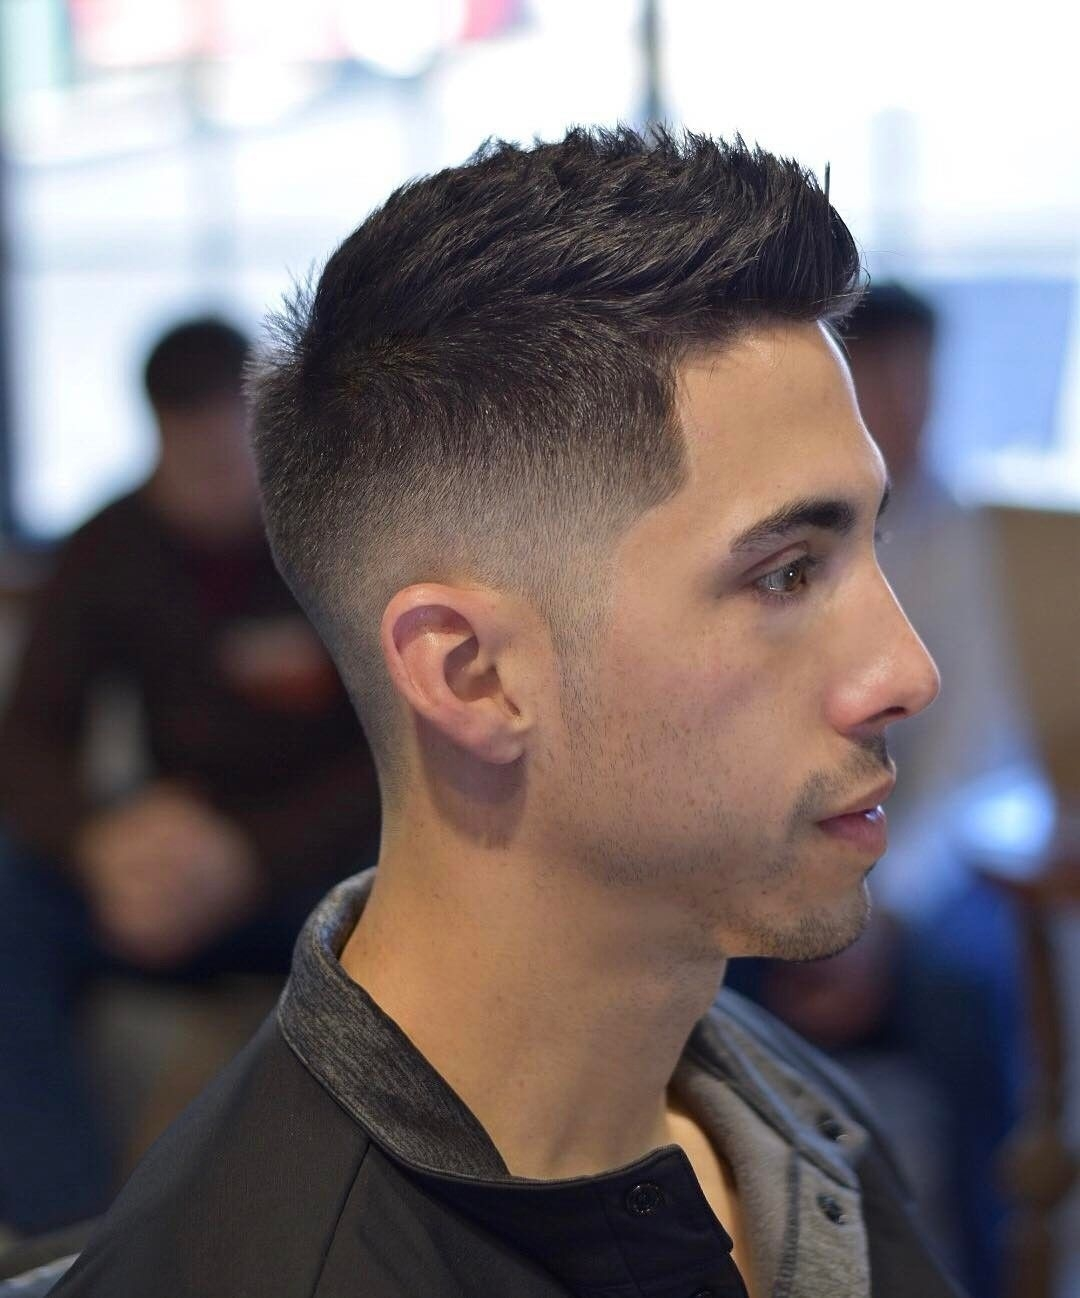 Haircut Styles: Army Haircut Style In India